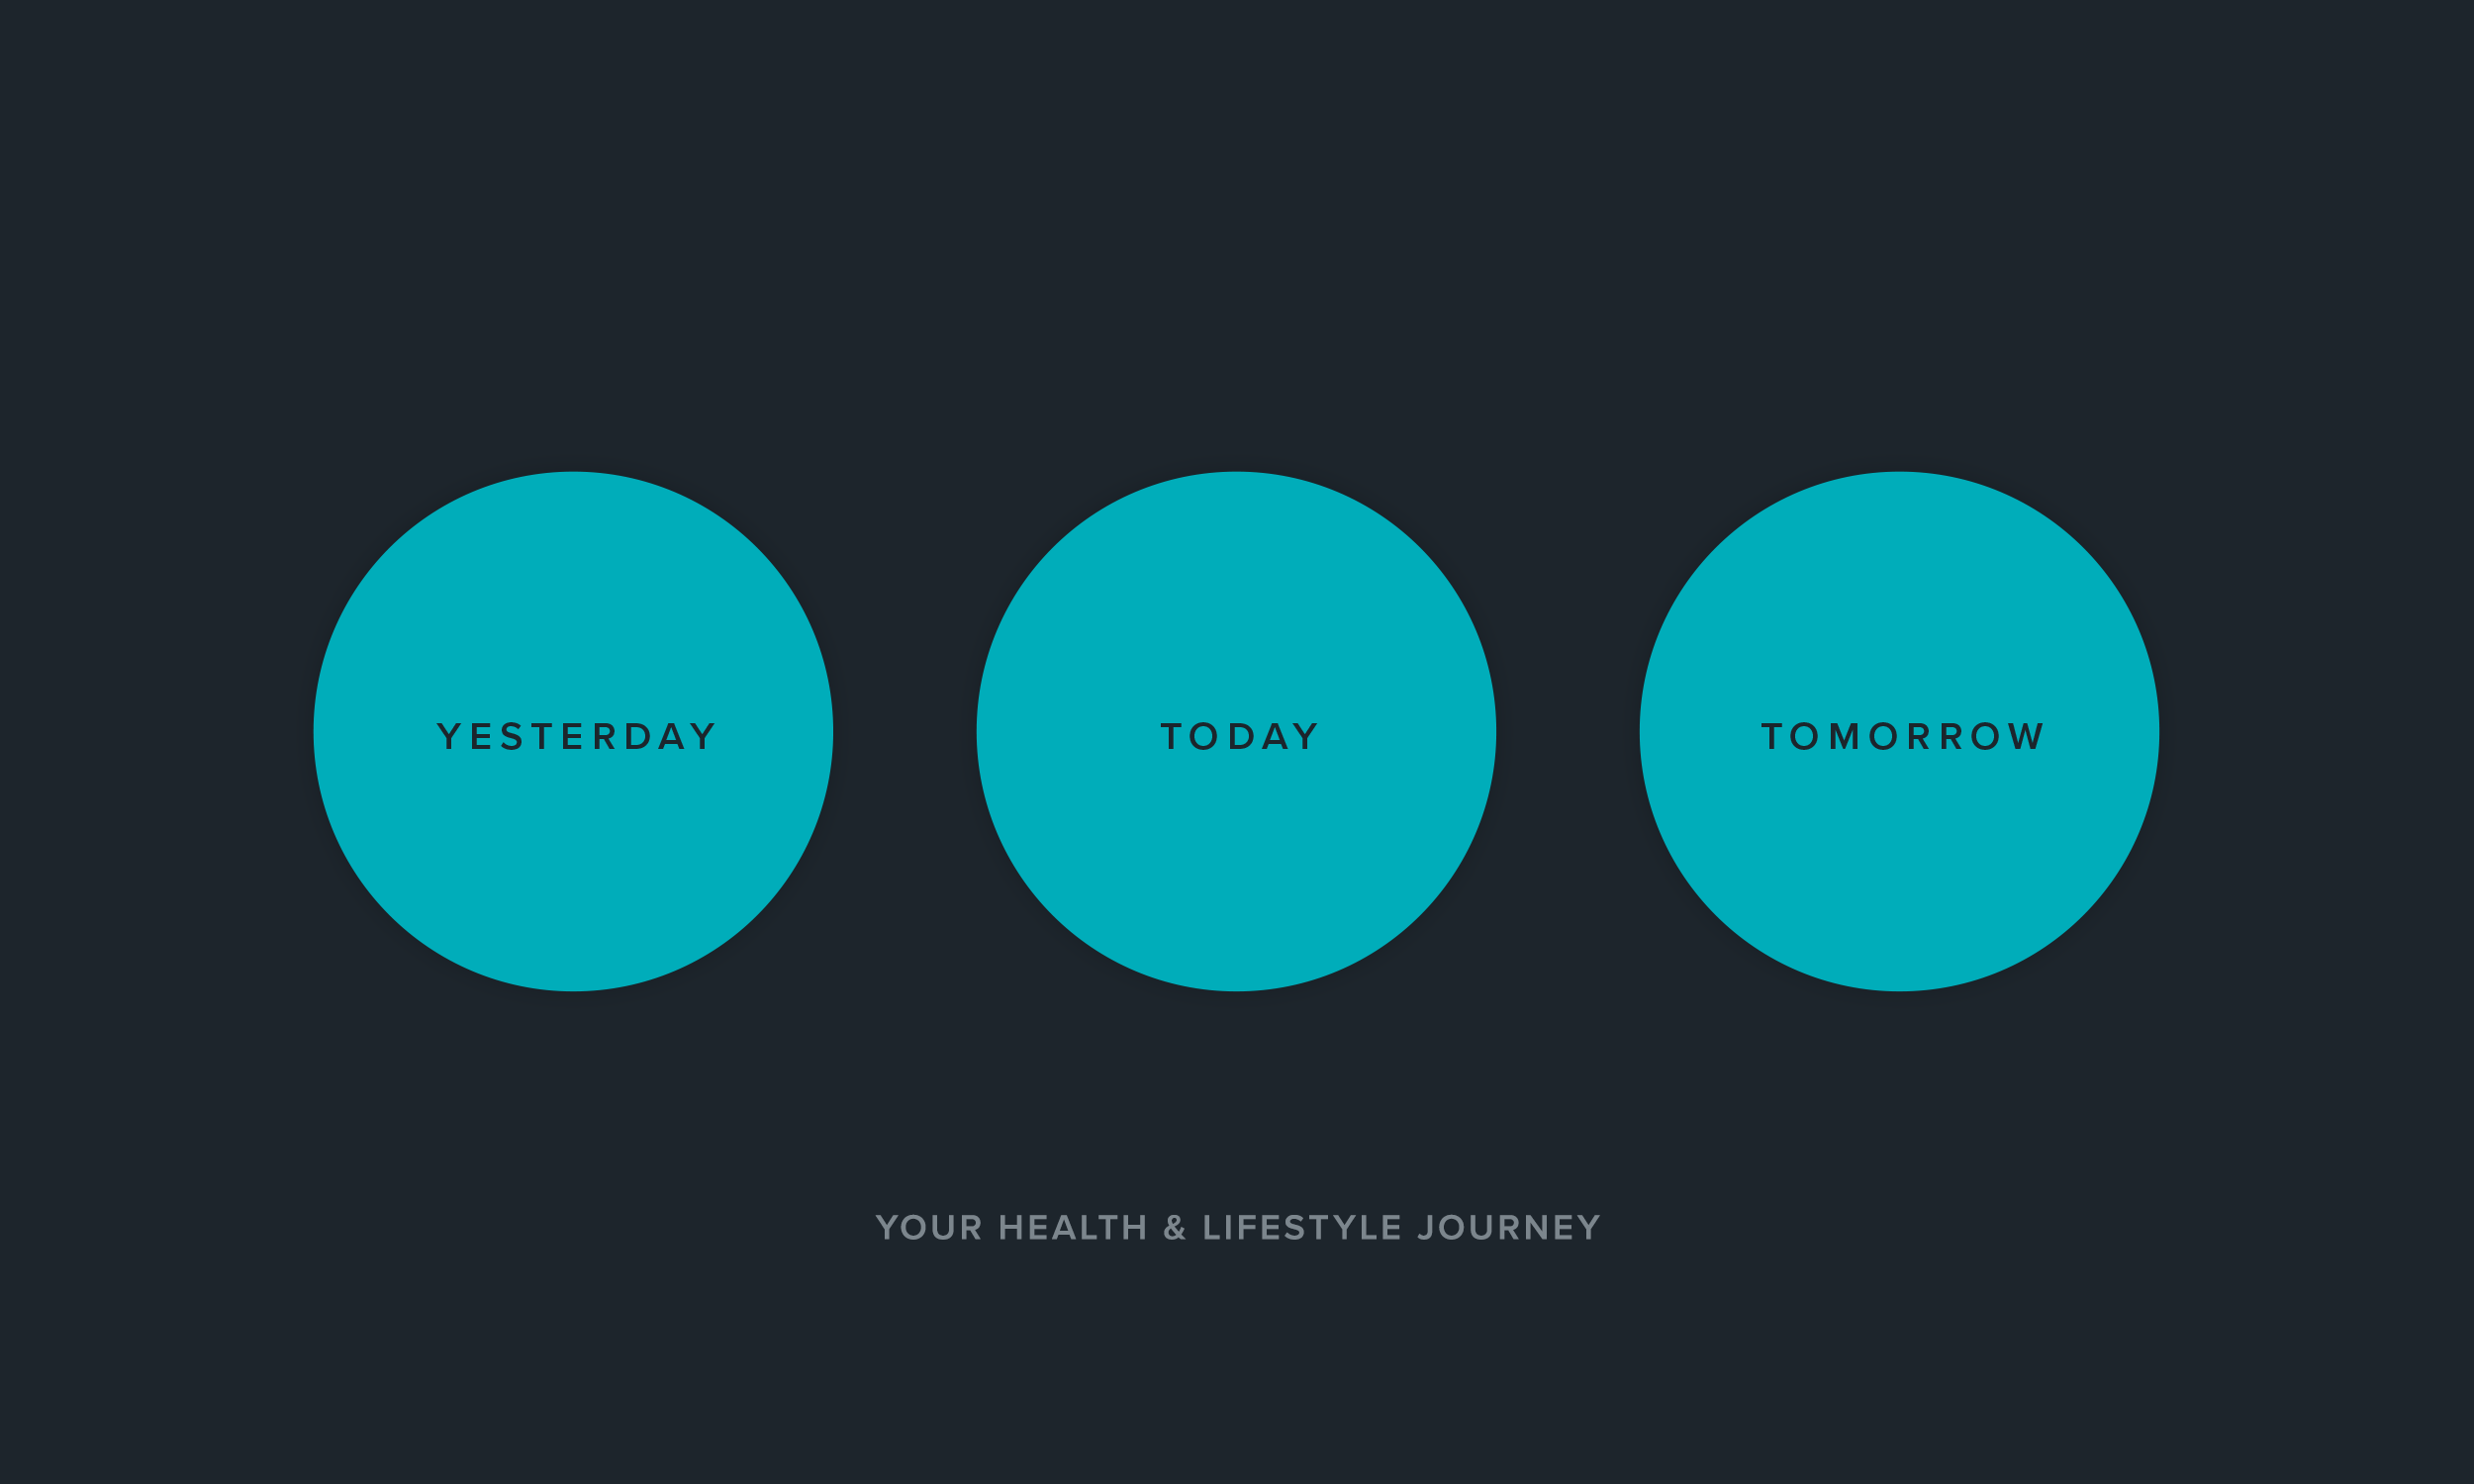 Three-Steps-to-Better-Health-1-Tomorrow-Identity-by-Ian-Whalley.png